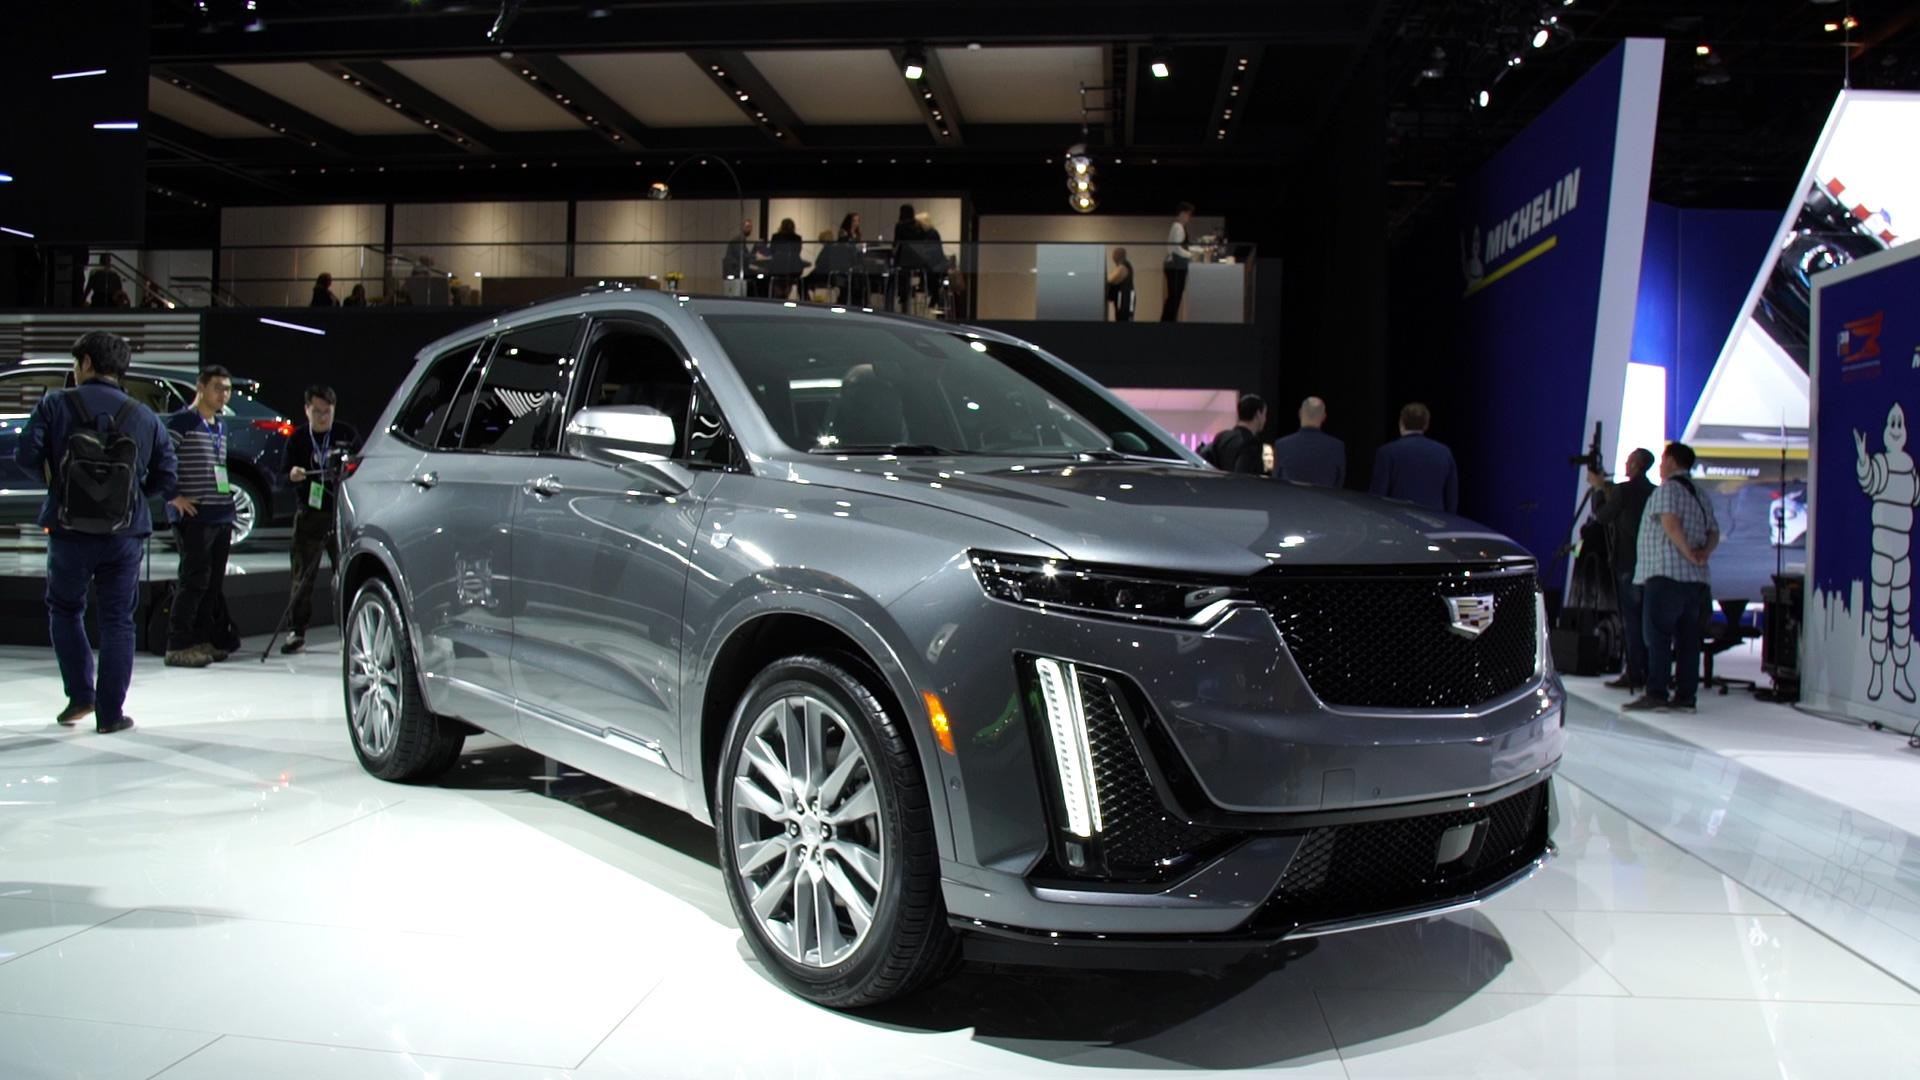 34 All New 2020 Cadillac Suv Lineup Specs and Review for 2020 Cadillac Suv Lineup